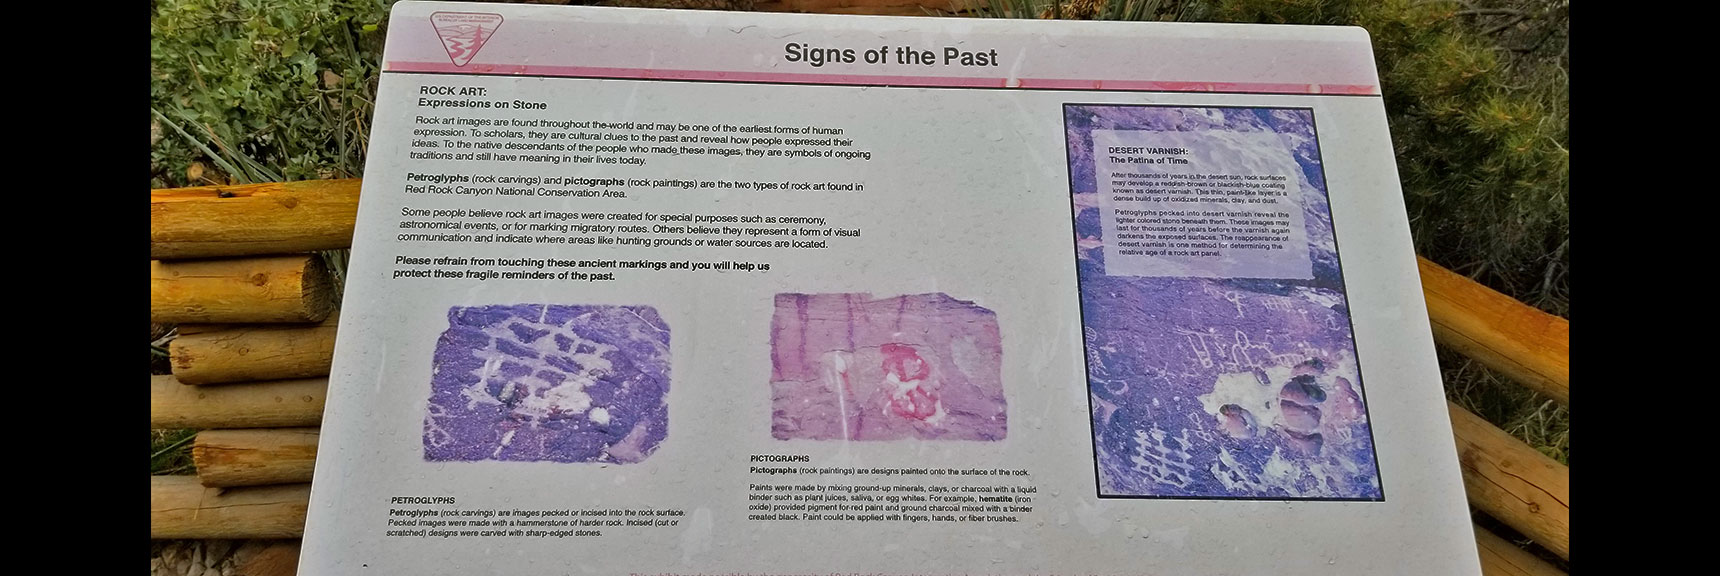 Interpretive Sign for Petroglyphs Just Off White Rock Mountain Loop in Red Rock Park, Nevada